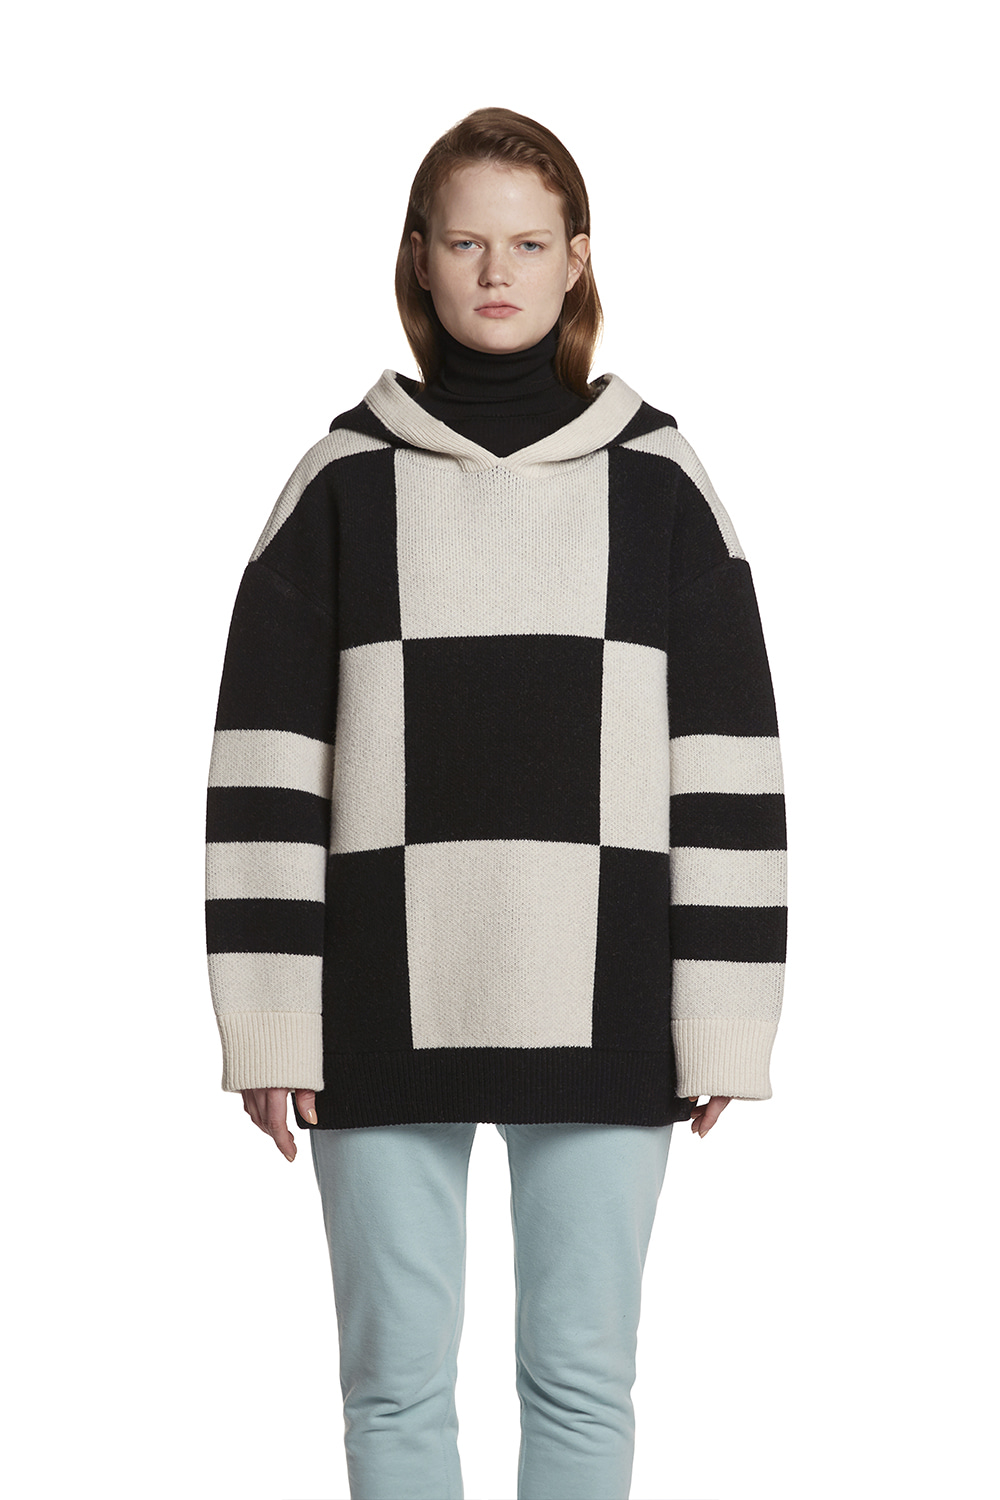 Chess Knit hoodie